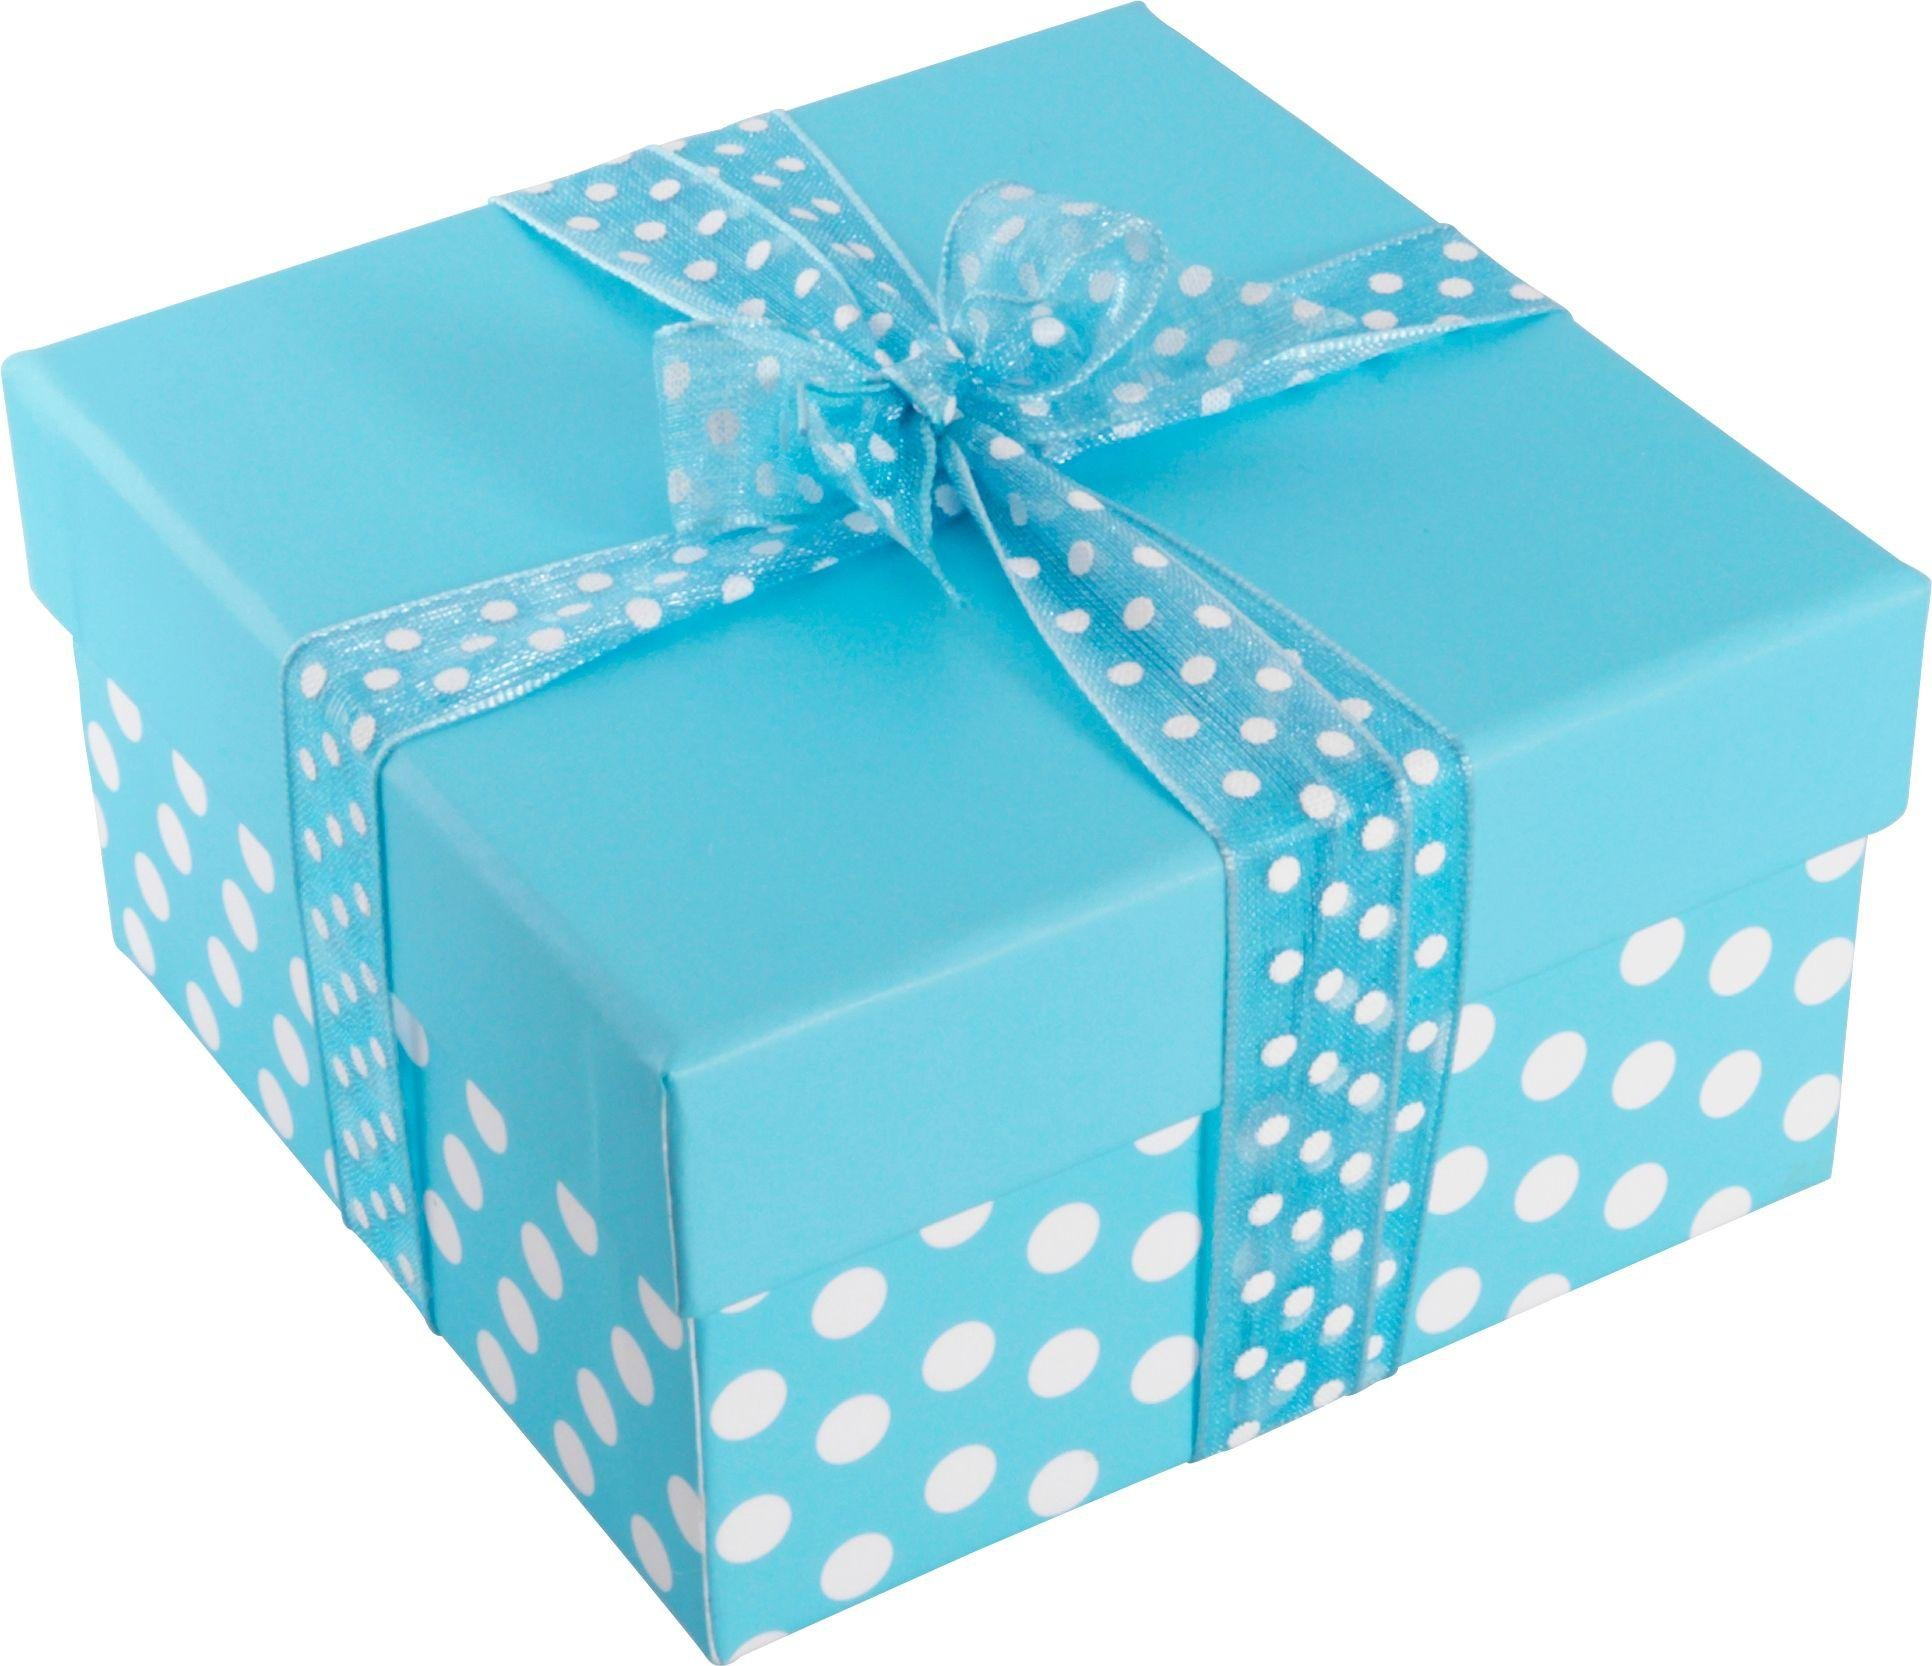 Argos - Children's - Jewellery Box - Blue